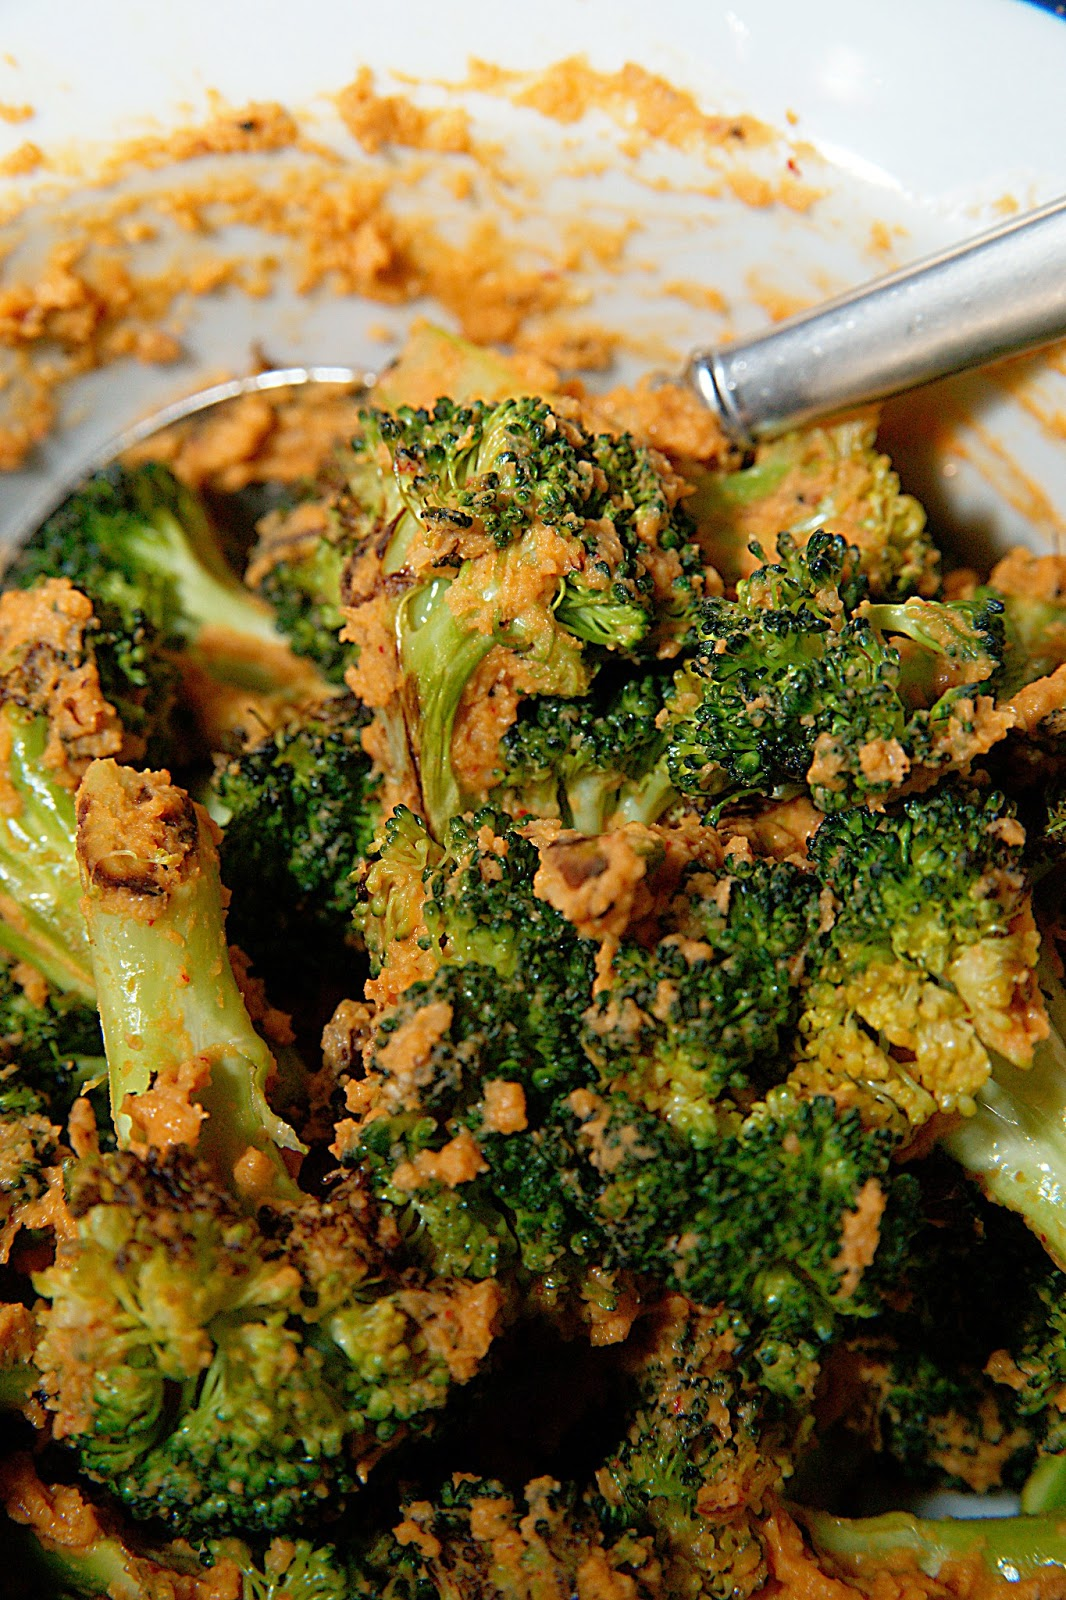 ... ways to flavor roasted broccoli roasting broccoli is so easy and it